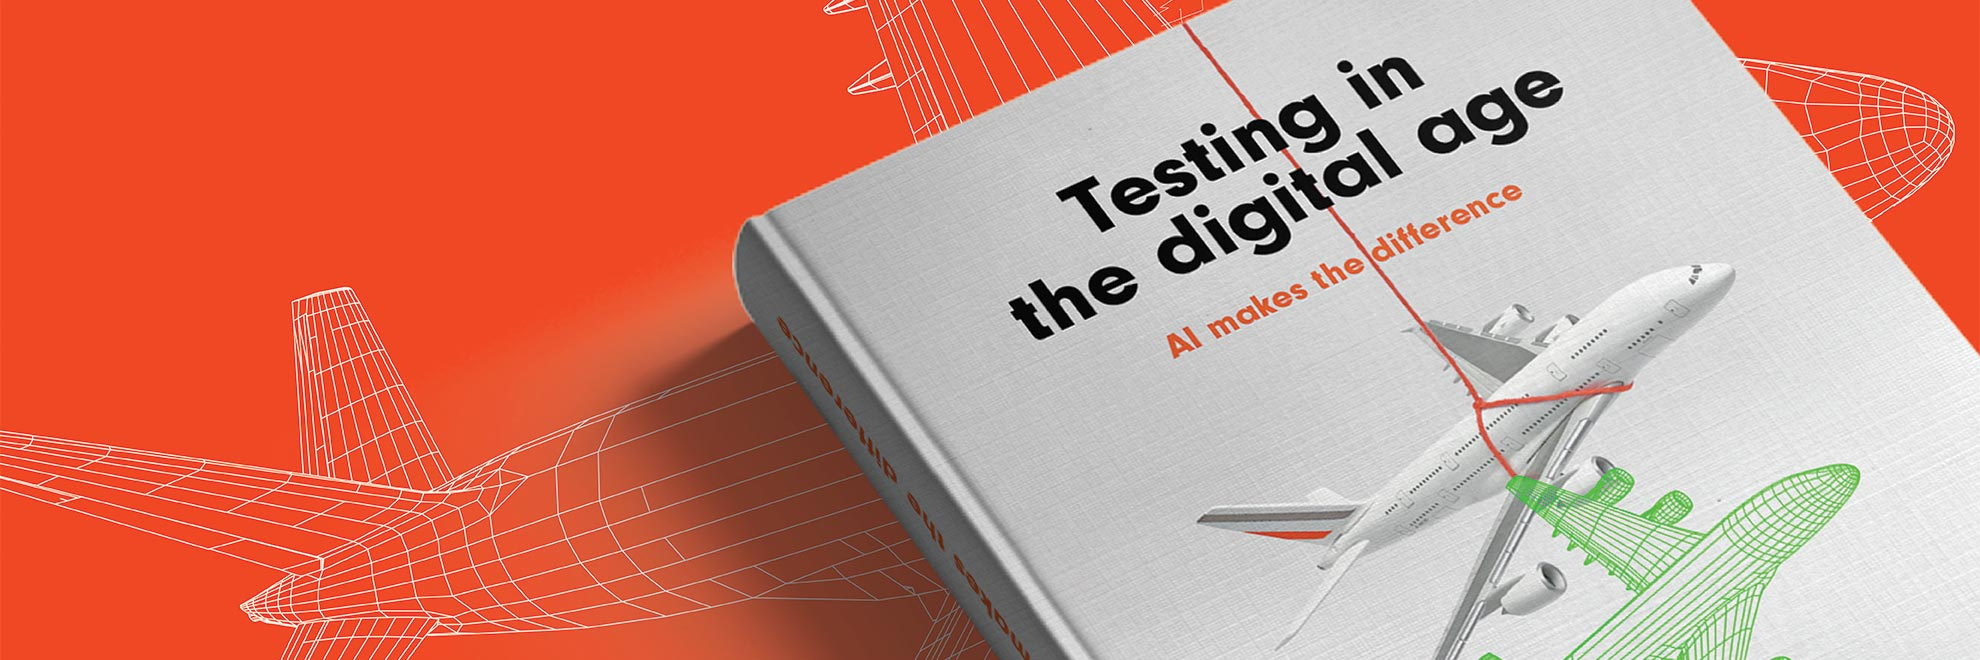 testing in a digital age